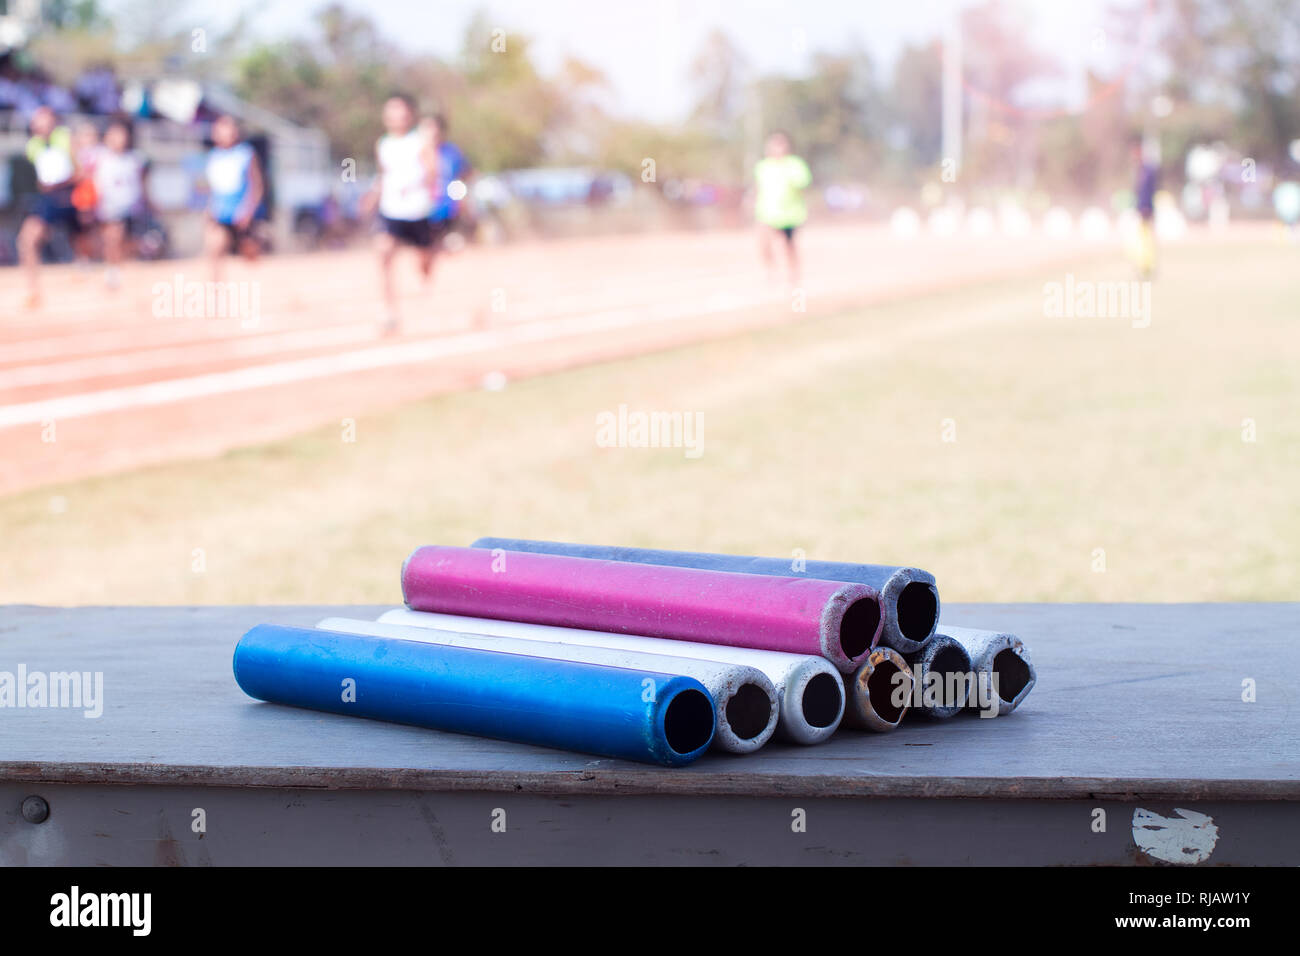 The group of baton in  Athletics - Stock Image